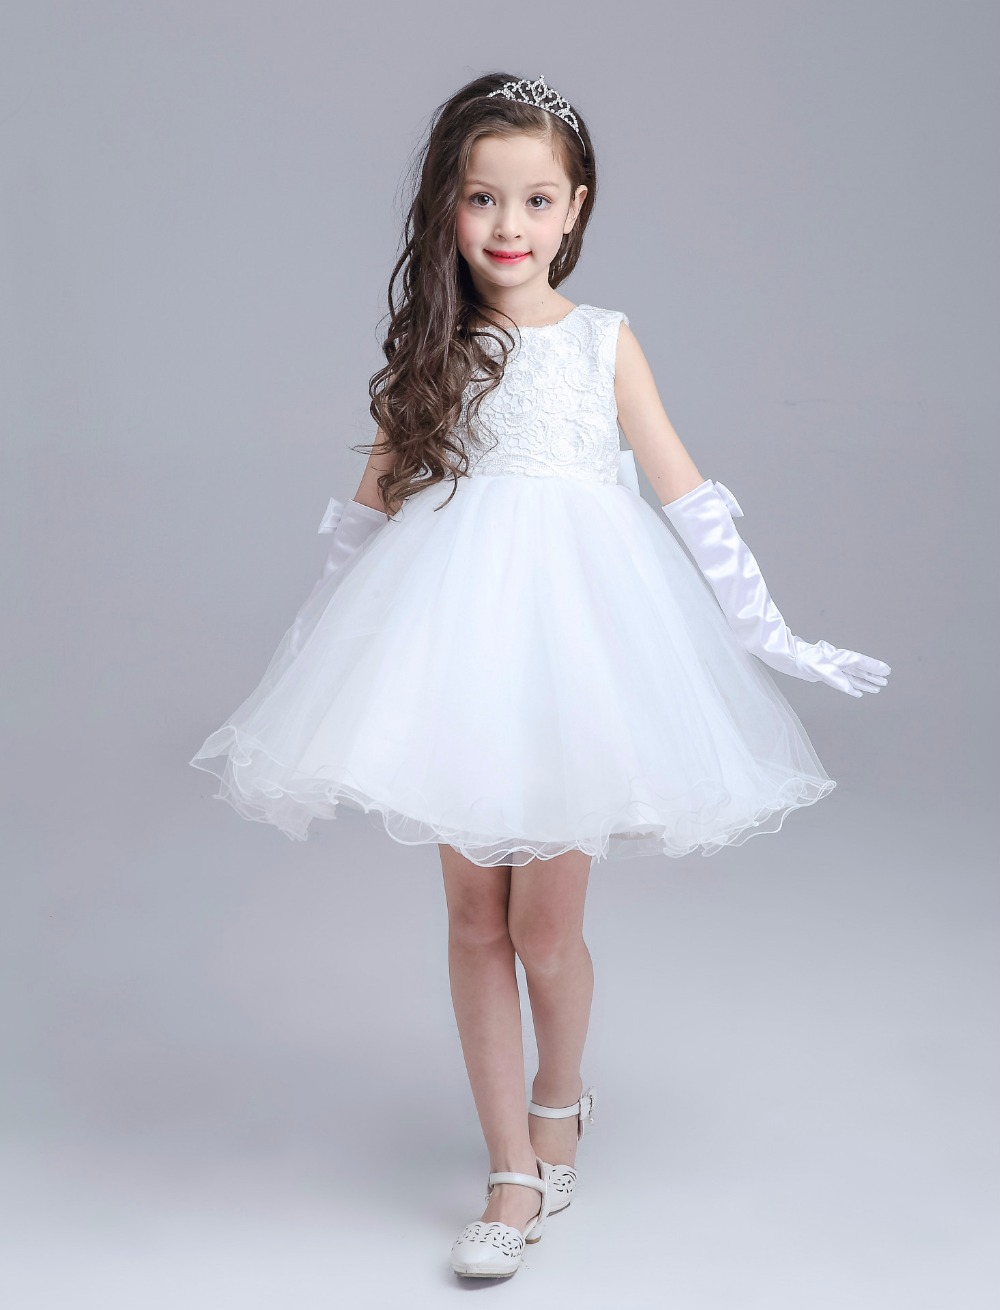 country flower girls wedding dresses for girls Find this Pin and more on My dream wedding Flower Girl Dresses Indianapolis